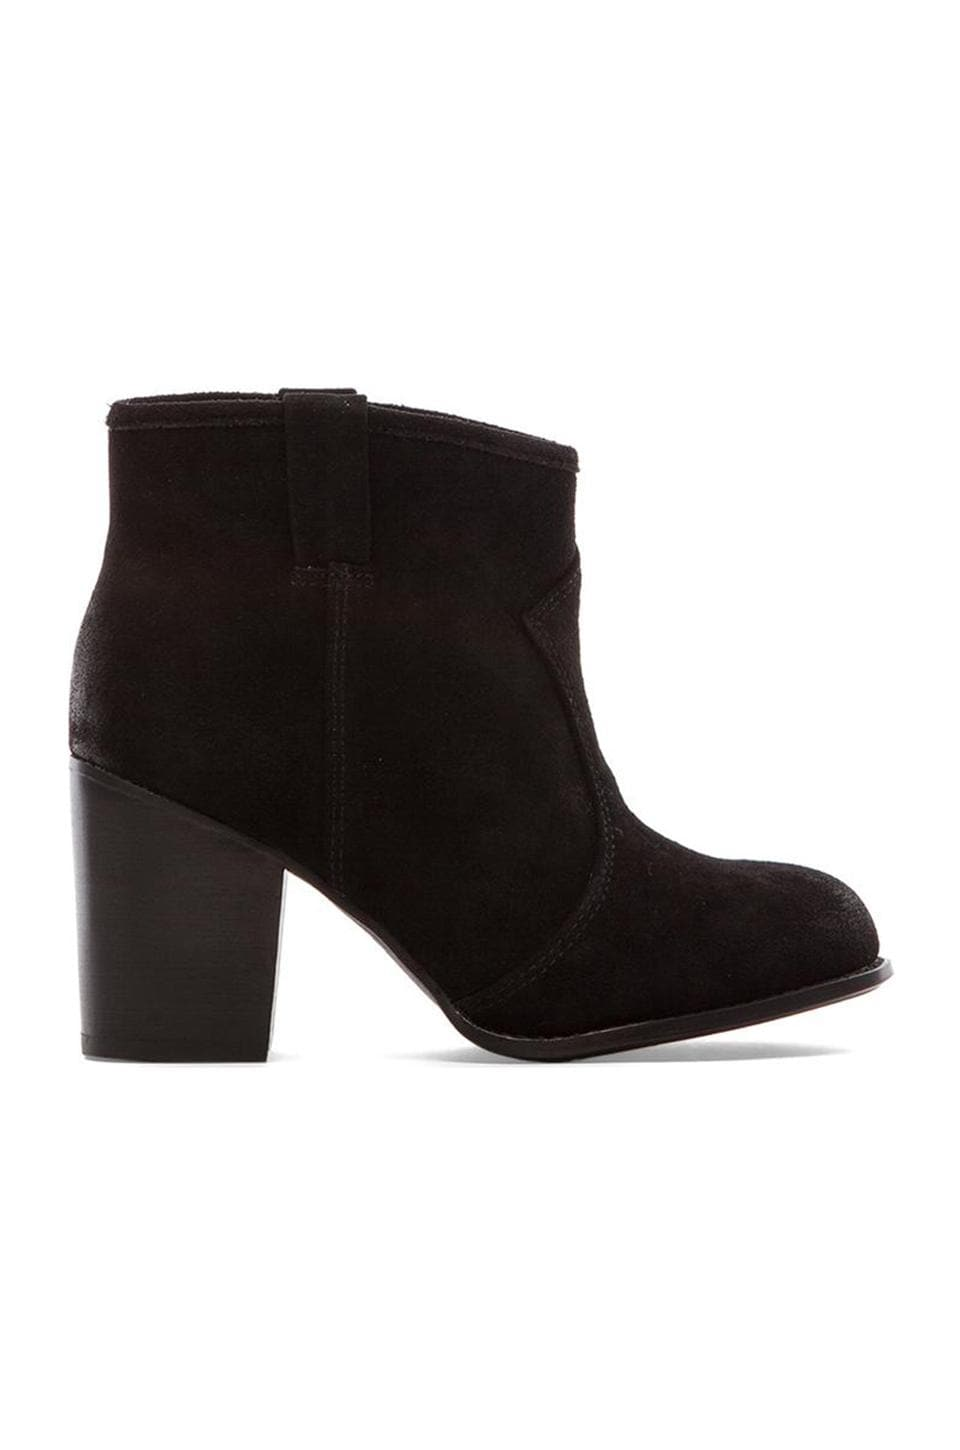 Splendid Lakota Heeled Booties in Black